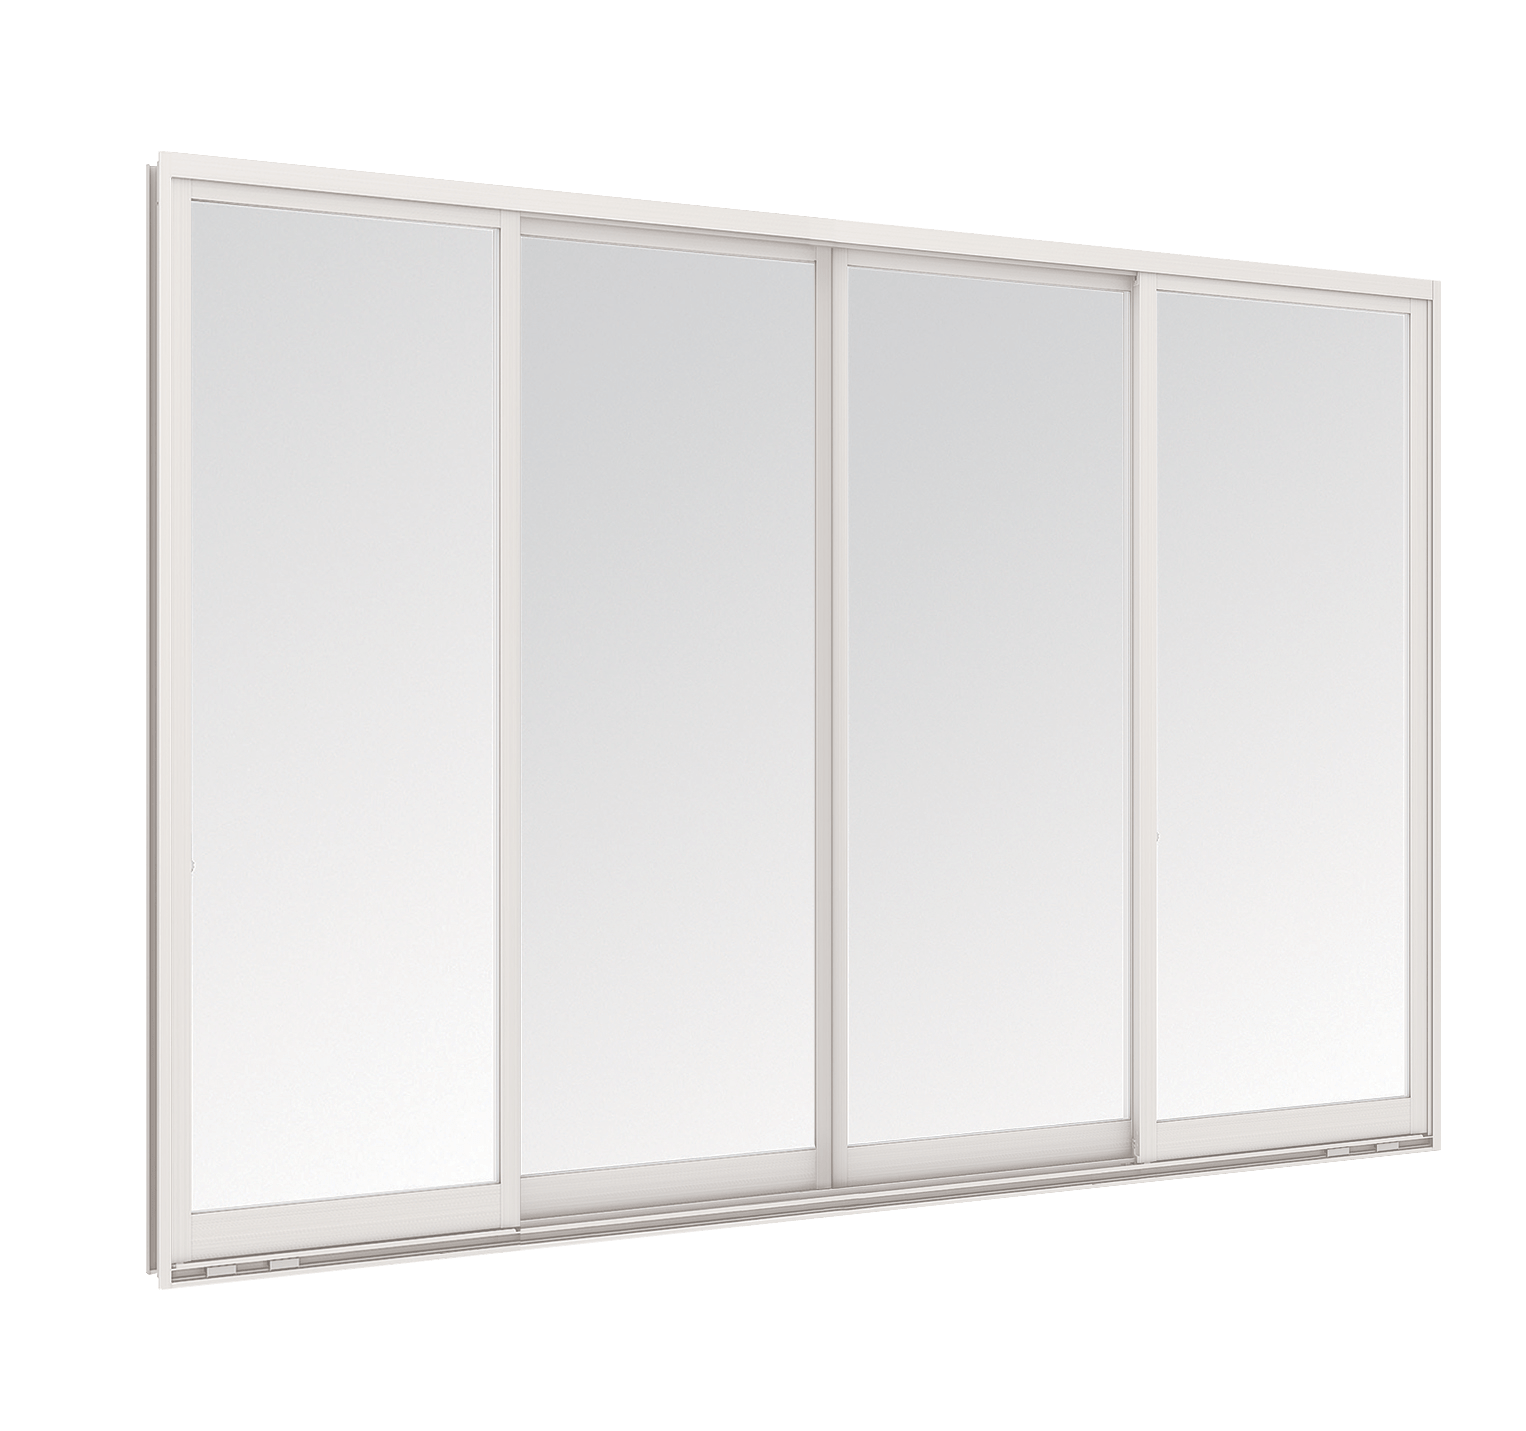 Aluminium Sliding window - 4 panels on 2 tracks